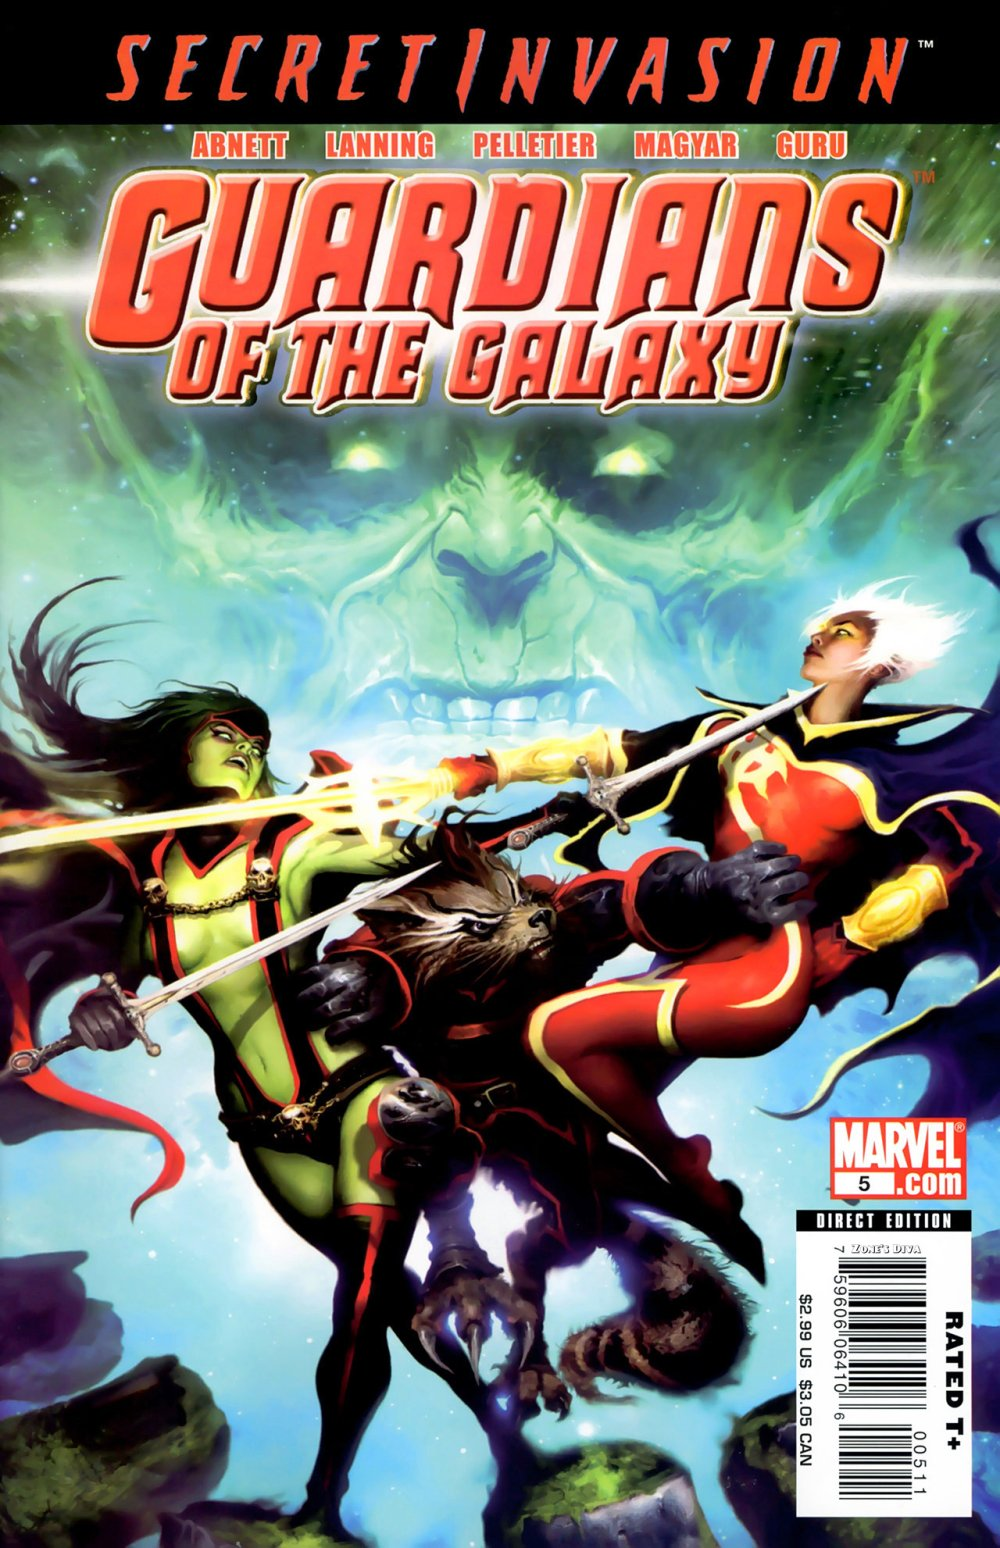 Guardians of the Galaxy 0005a.jpg